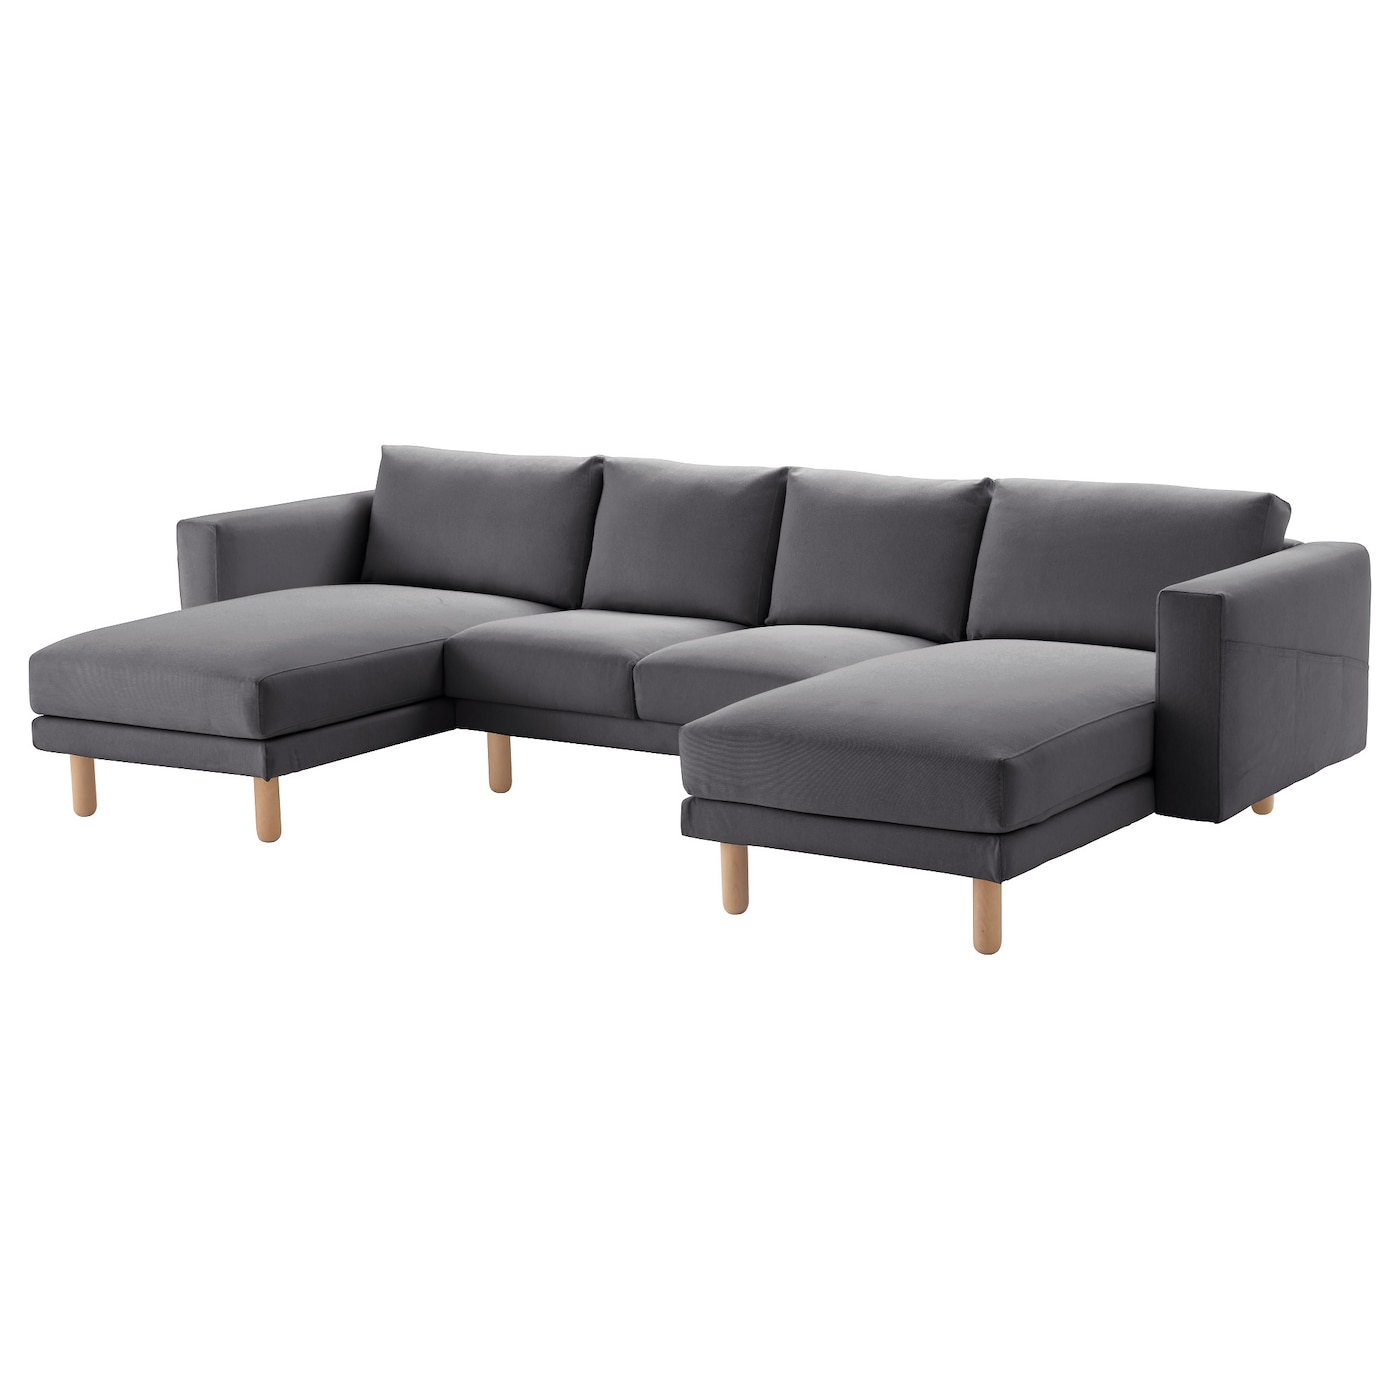 norsborg 2 seat sofa with 2 chaise longues finnsta dark